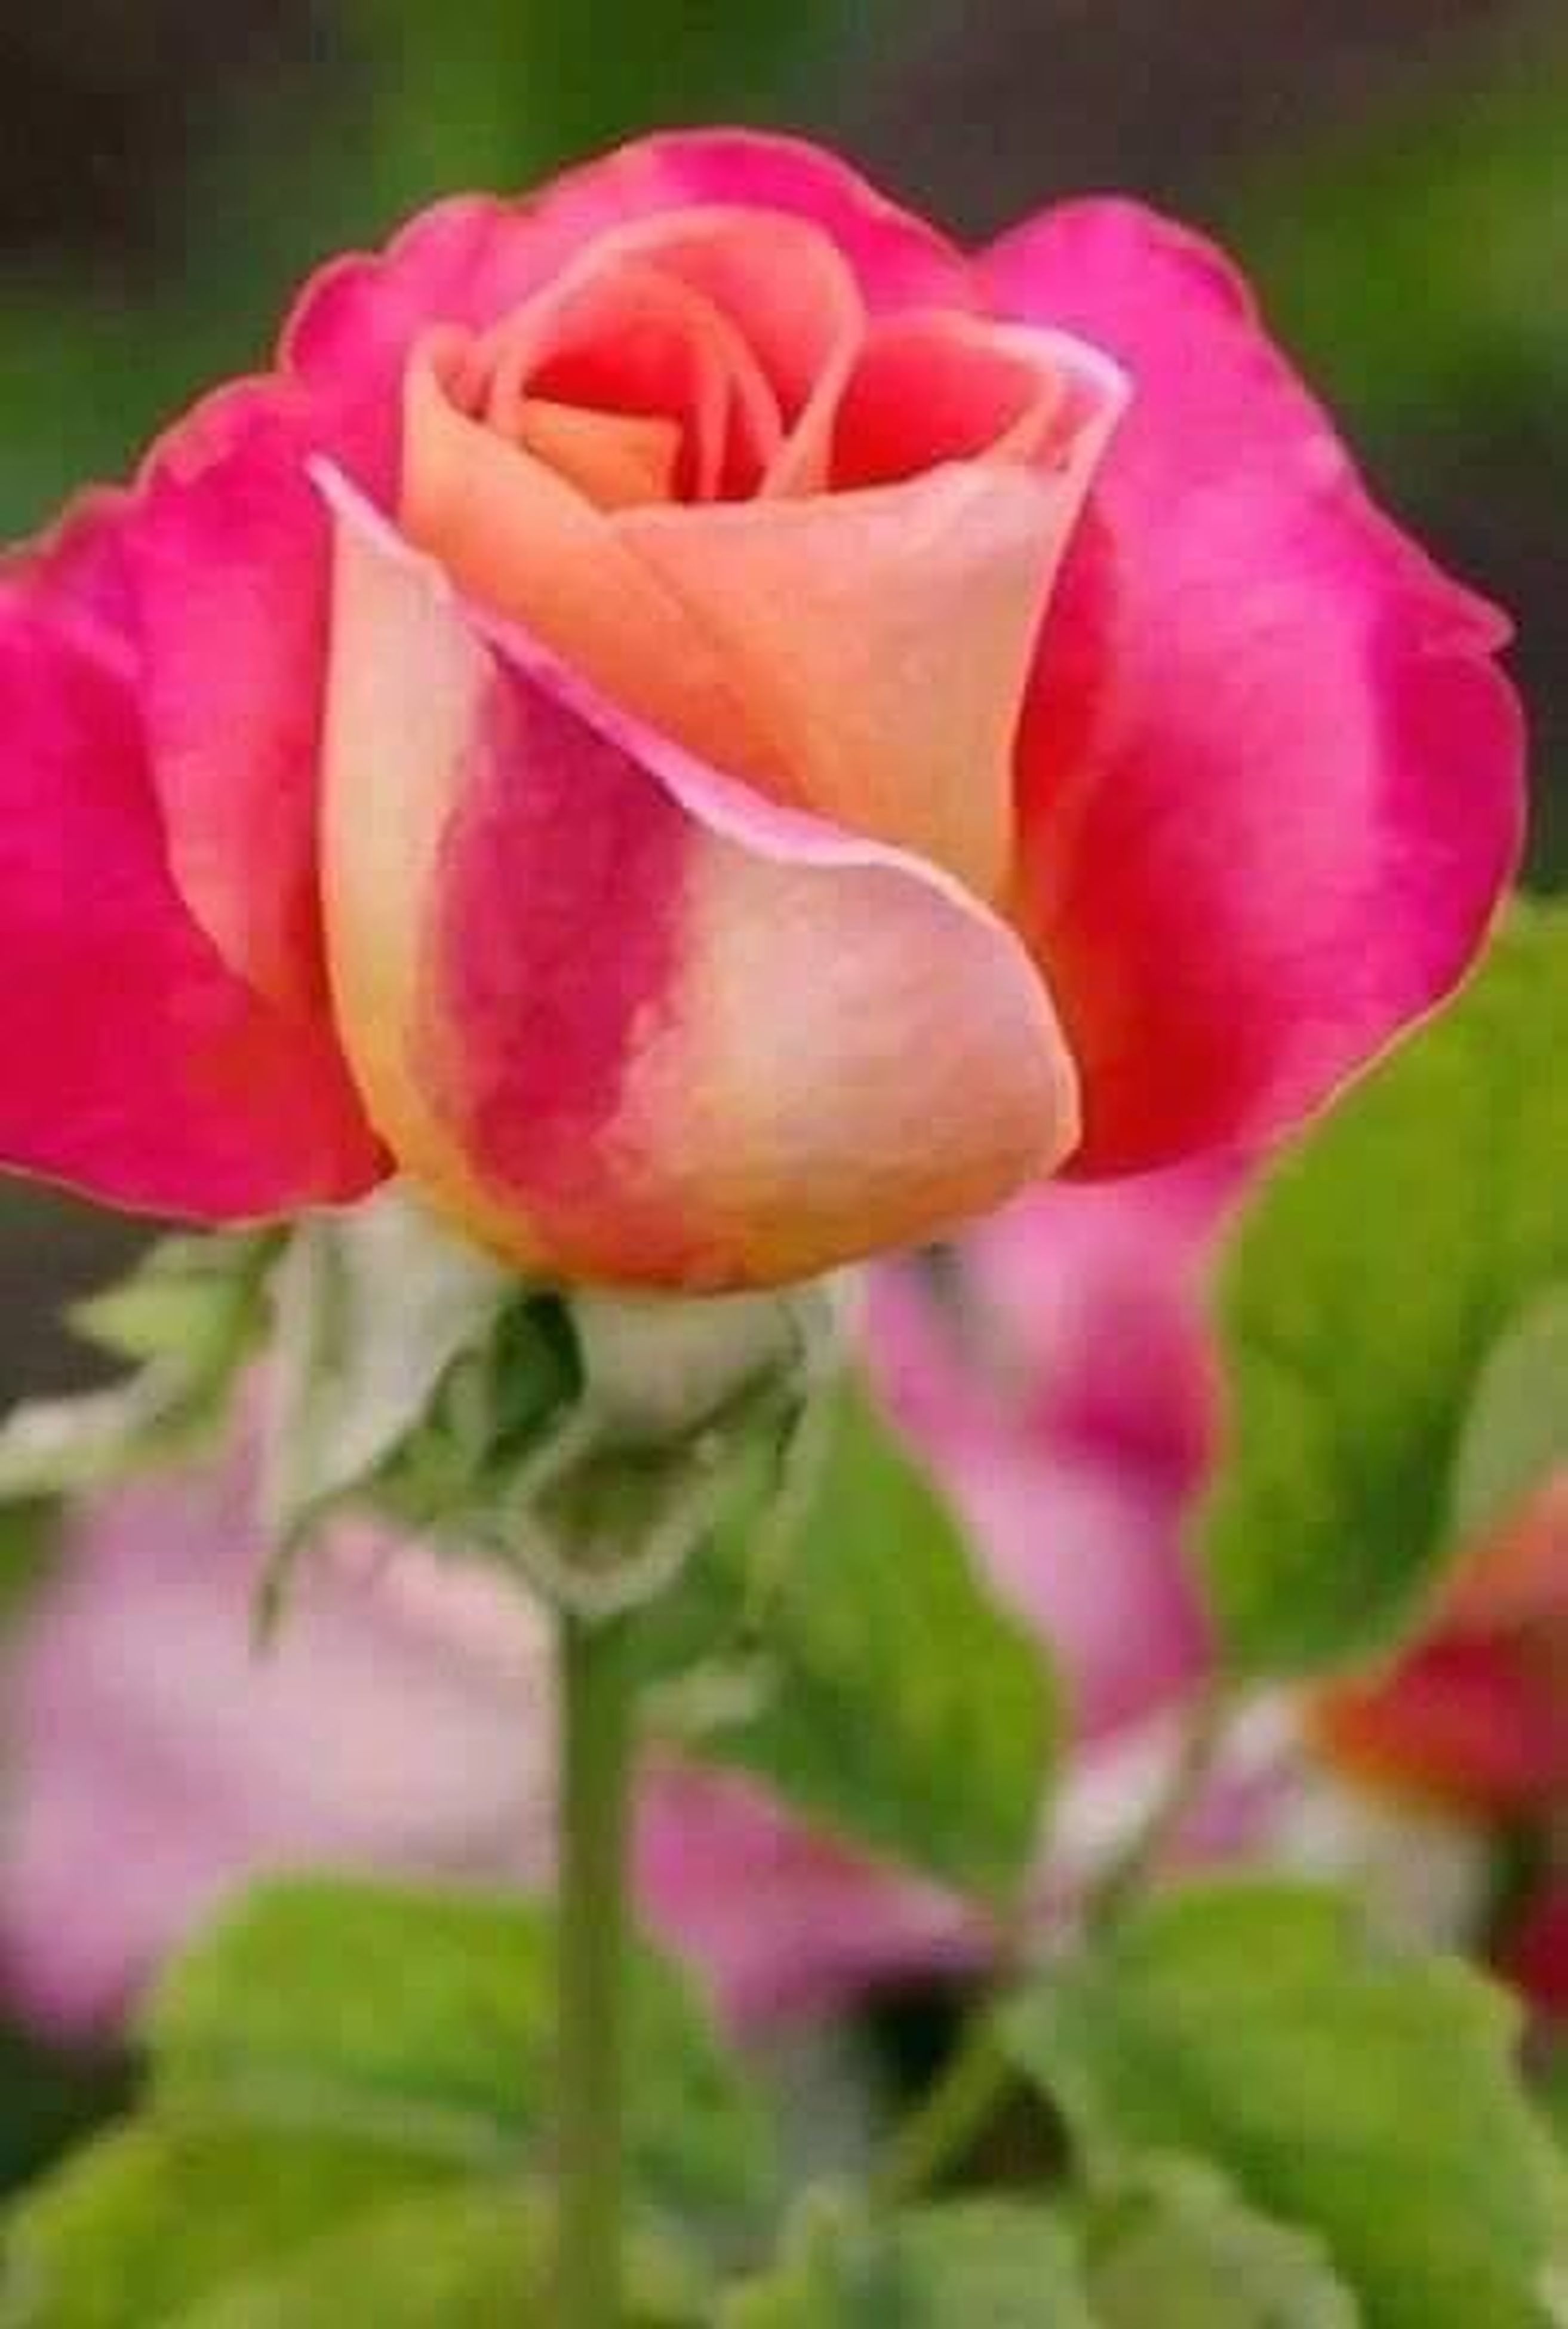 flower, petal, fragility, freshness, flower head, close-up, beauty in nature, rose - flower, pink color, springtime, growth, nature, season, love, macro, in bloom, blossom, natural pattern, stem, vibrant color, selective focus, single flower, botany, plant, rose, focus on foreground, rose petals, softness, single rose, soft focus, day, extreme close-up, bloom